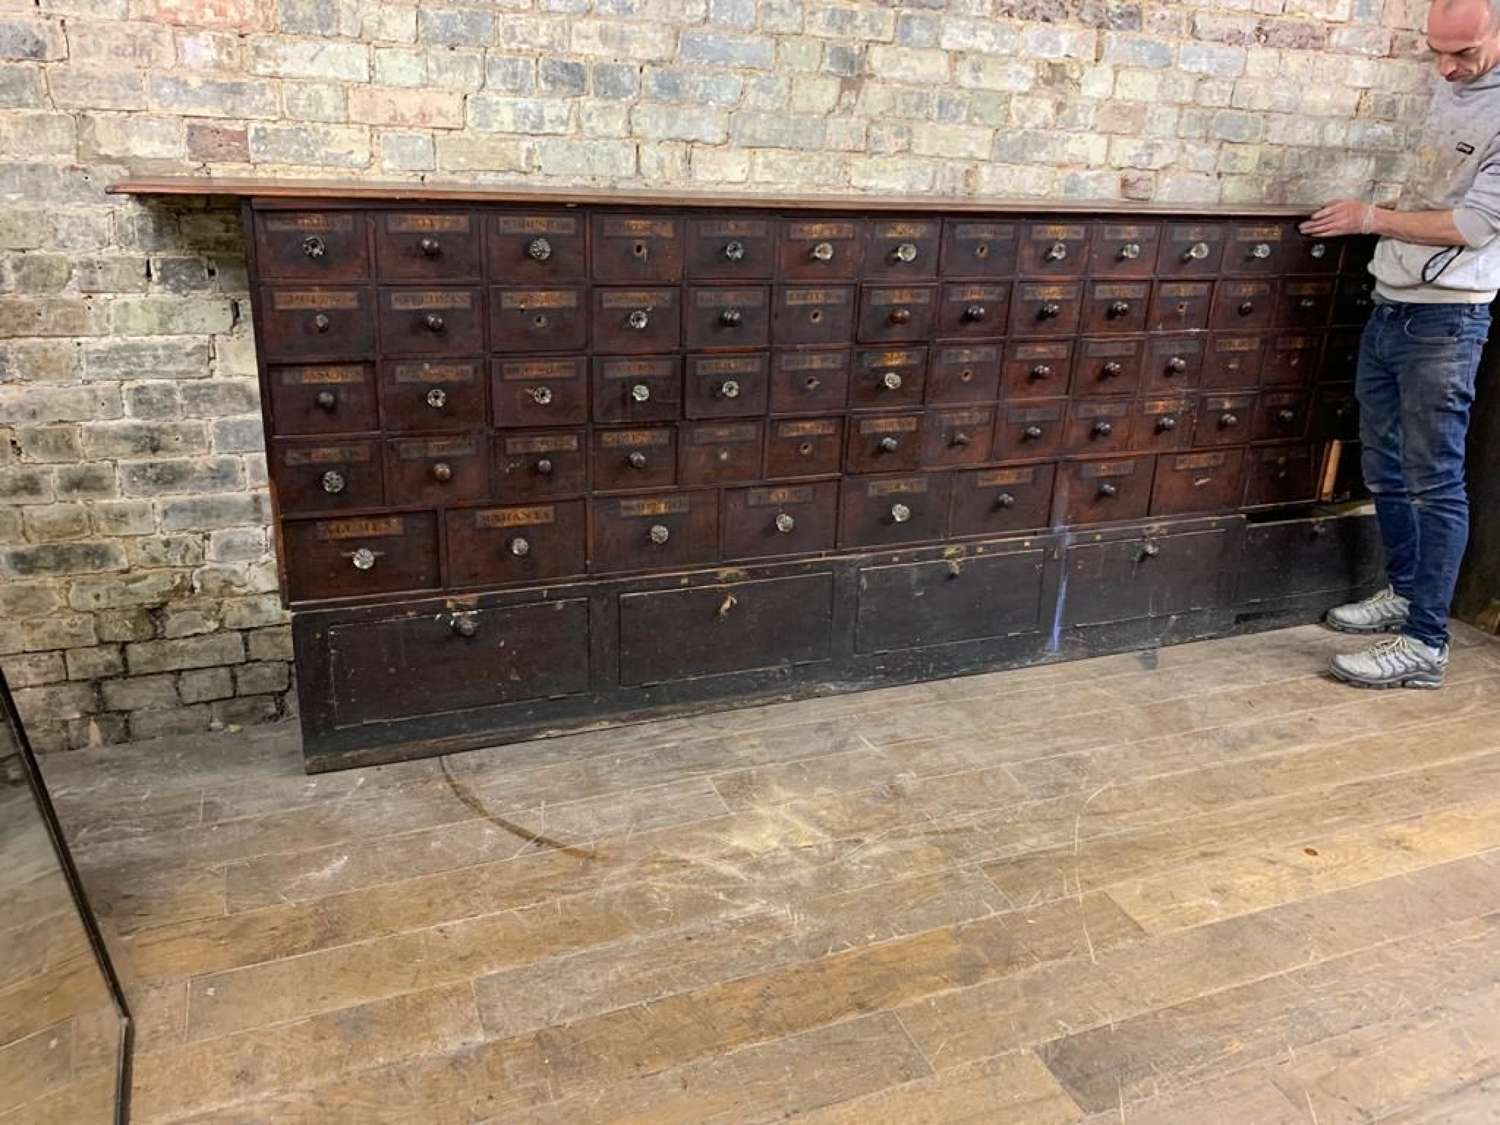 Chemist Bank of Drawers